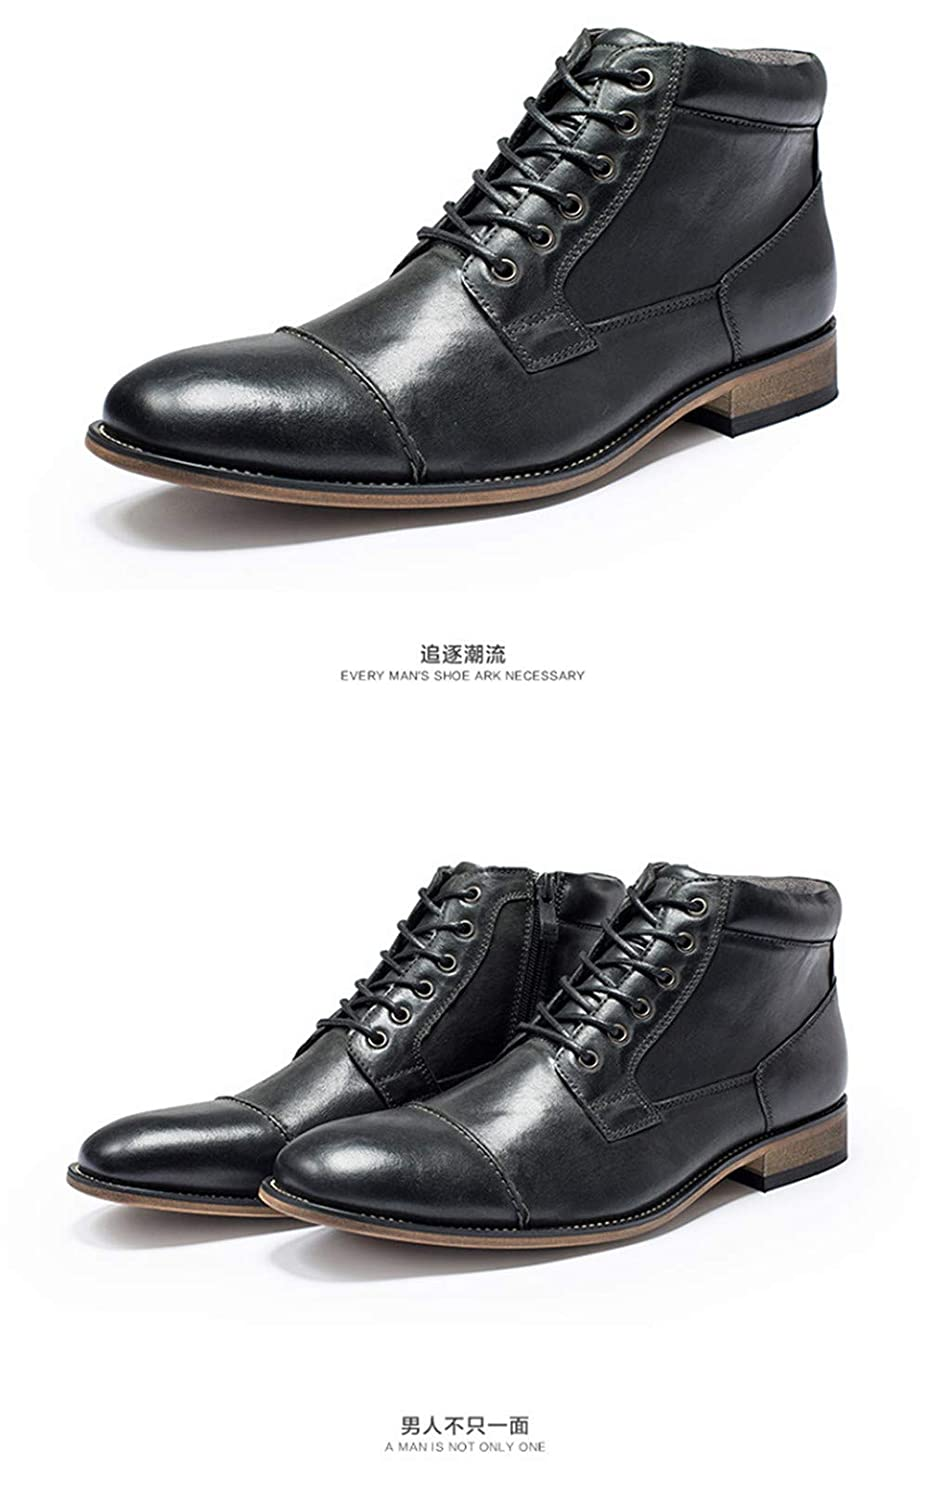 Casual Shoes in Autumn and Winter Genuine Leather Men Leather Shoes Ankle Winter Boots Chelsea Boot